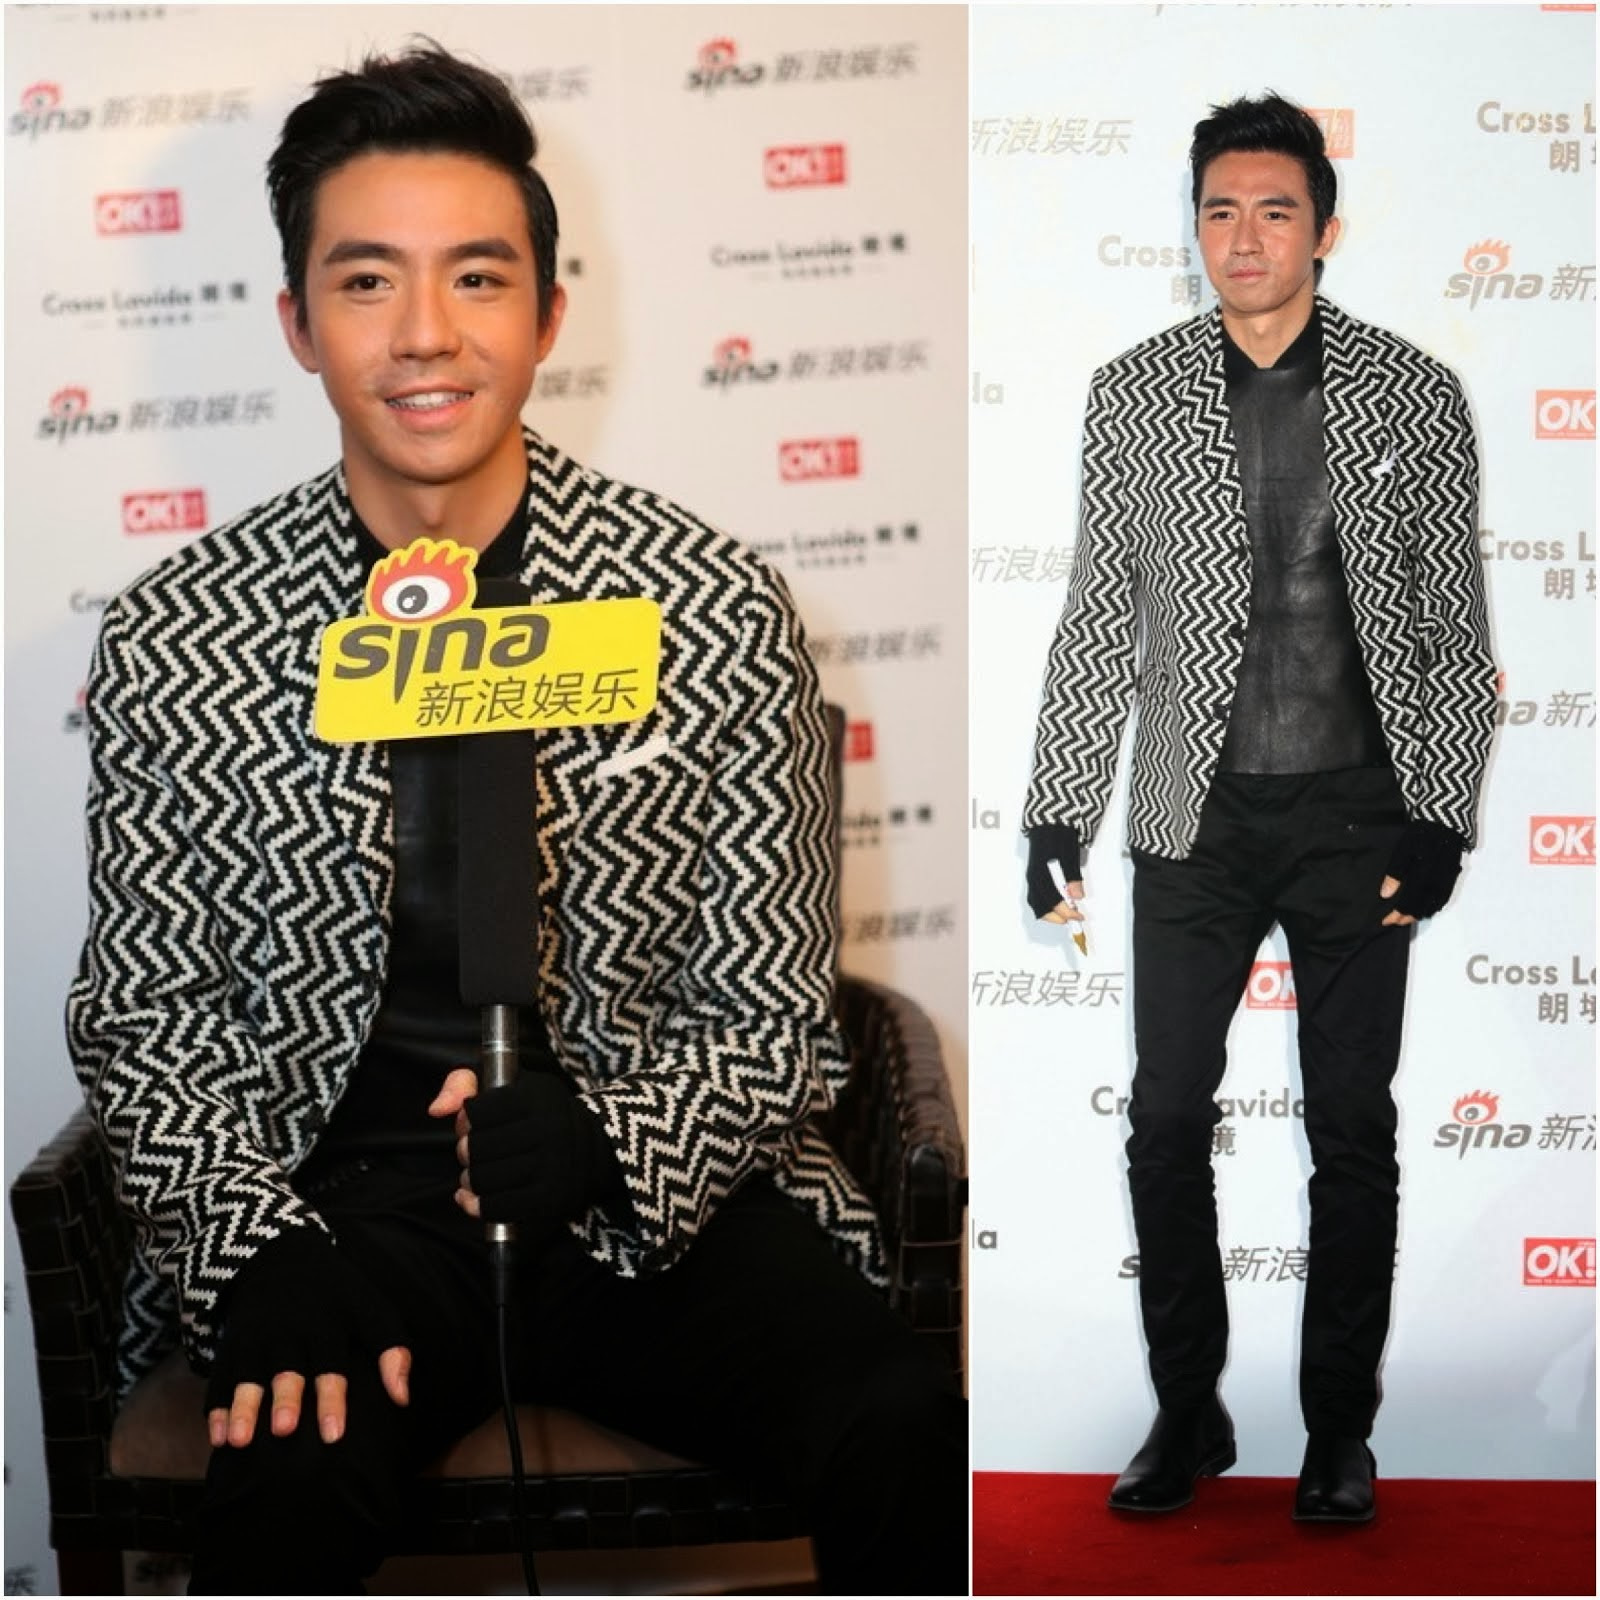 "00O00 Menswear Blog: Yu Hao Ming [俞灏明] in Neil Barrett - Sina and OK Magazine event, Shanghai 新浪娱乐与《OK!精彩》杂志上海 ""明星街拍盛典"""